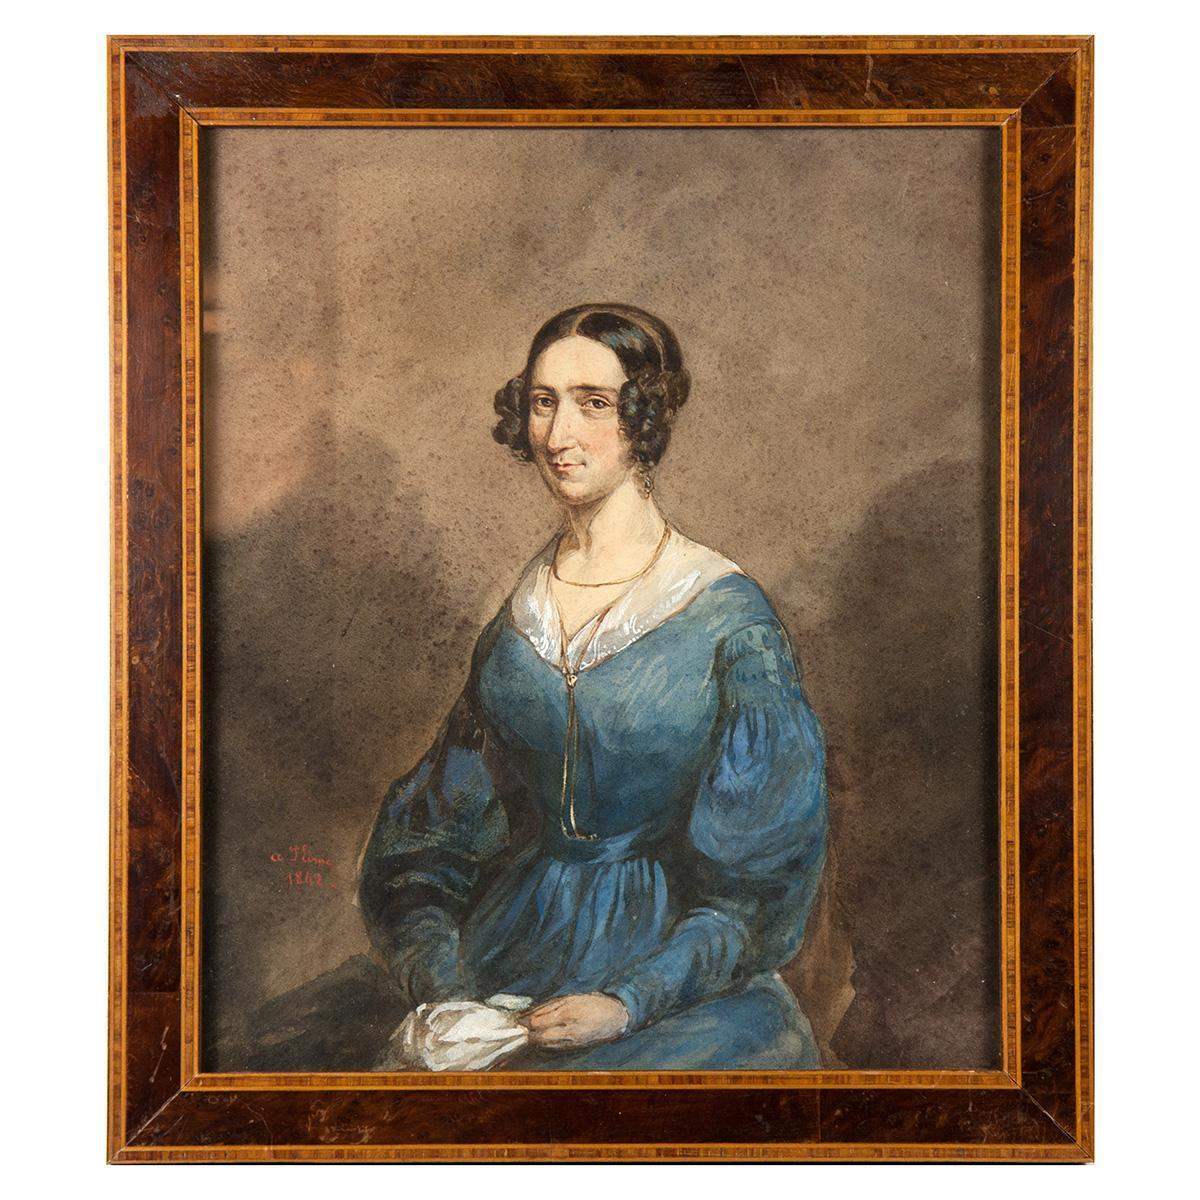 Superb Antique French Aquarelle Portrait, Frame, artist: Ludovic Alfred de Saint-Edme (French, born 1820)